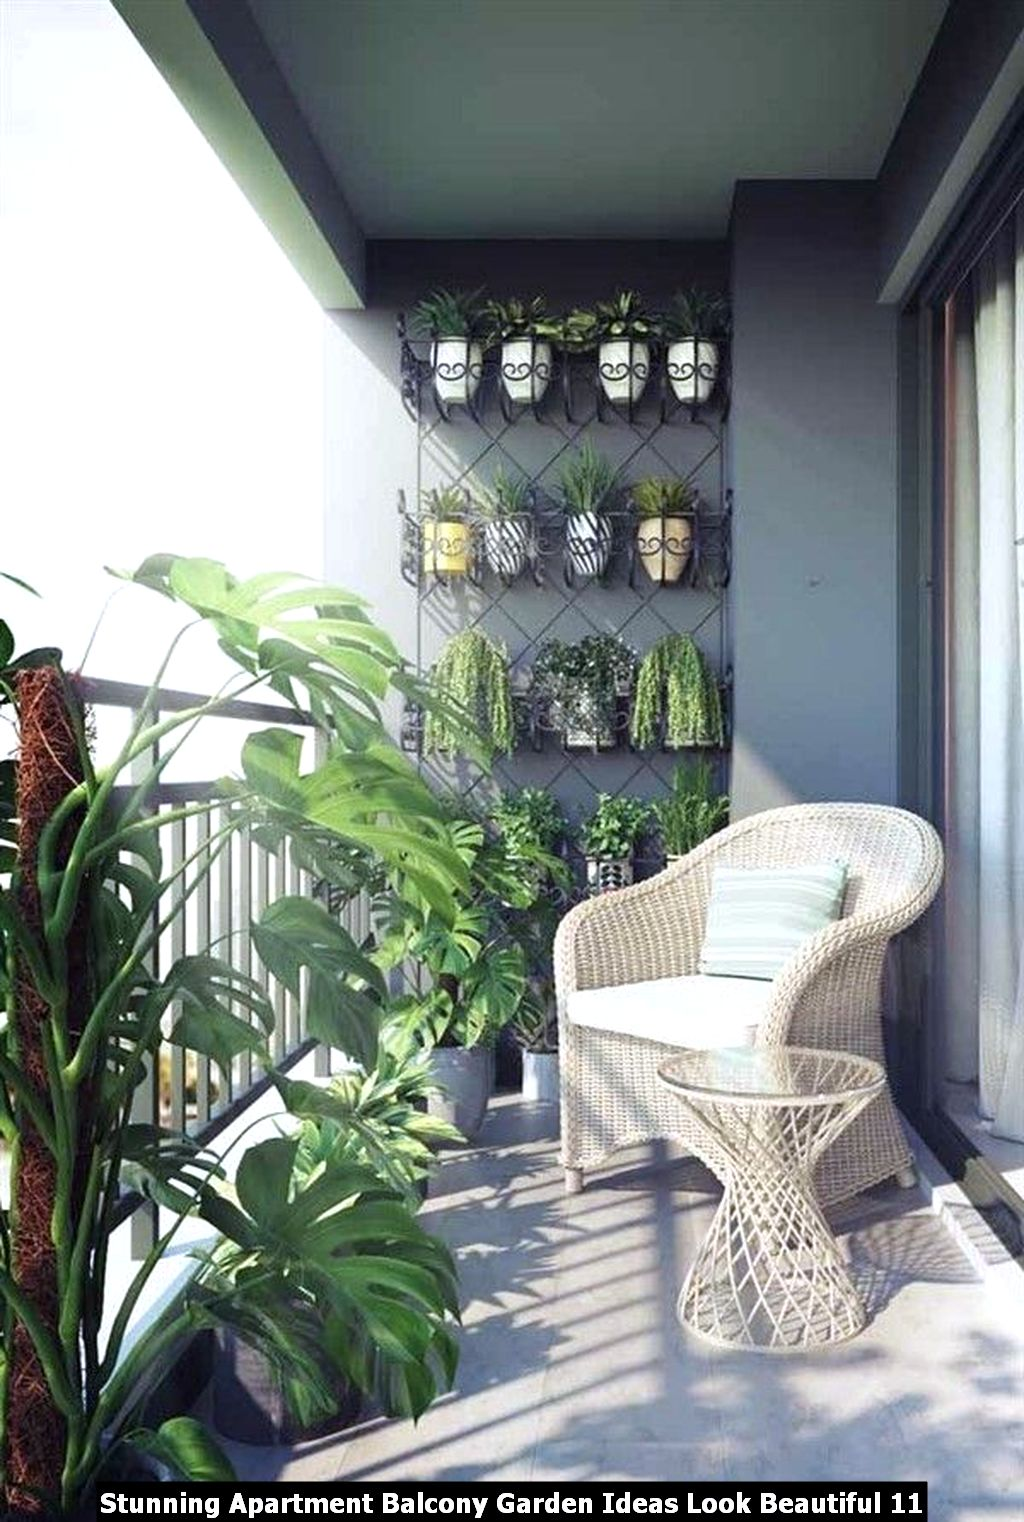 Stunning Apartment Balcony Garden Ideas Look Beautiful 11